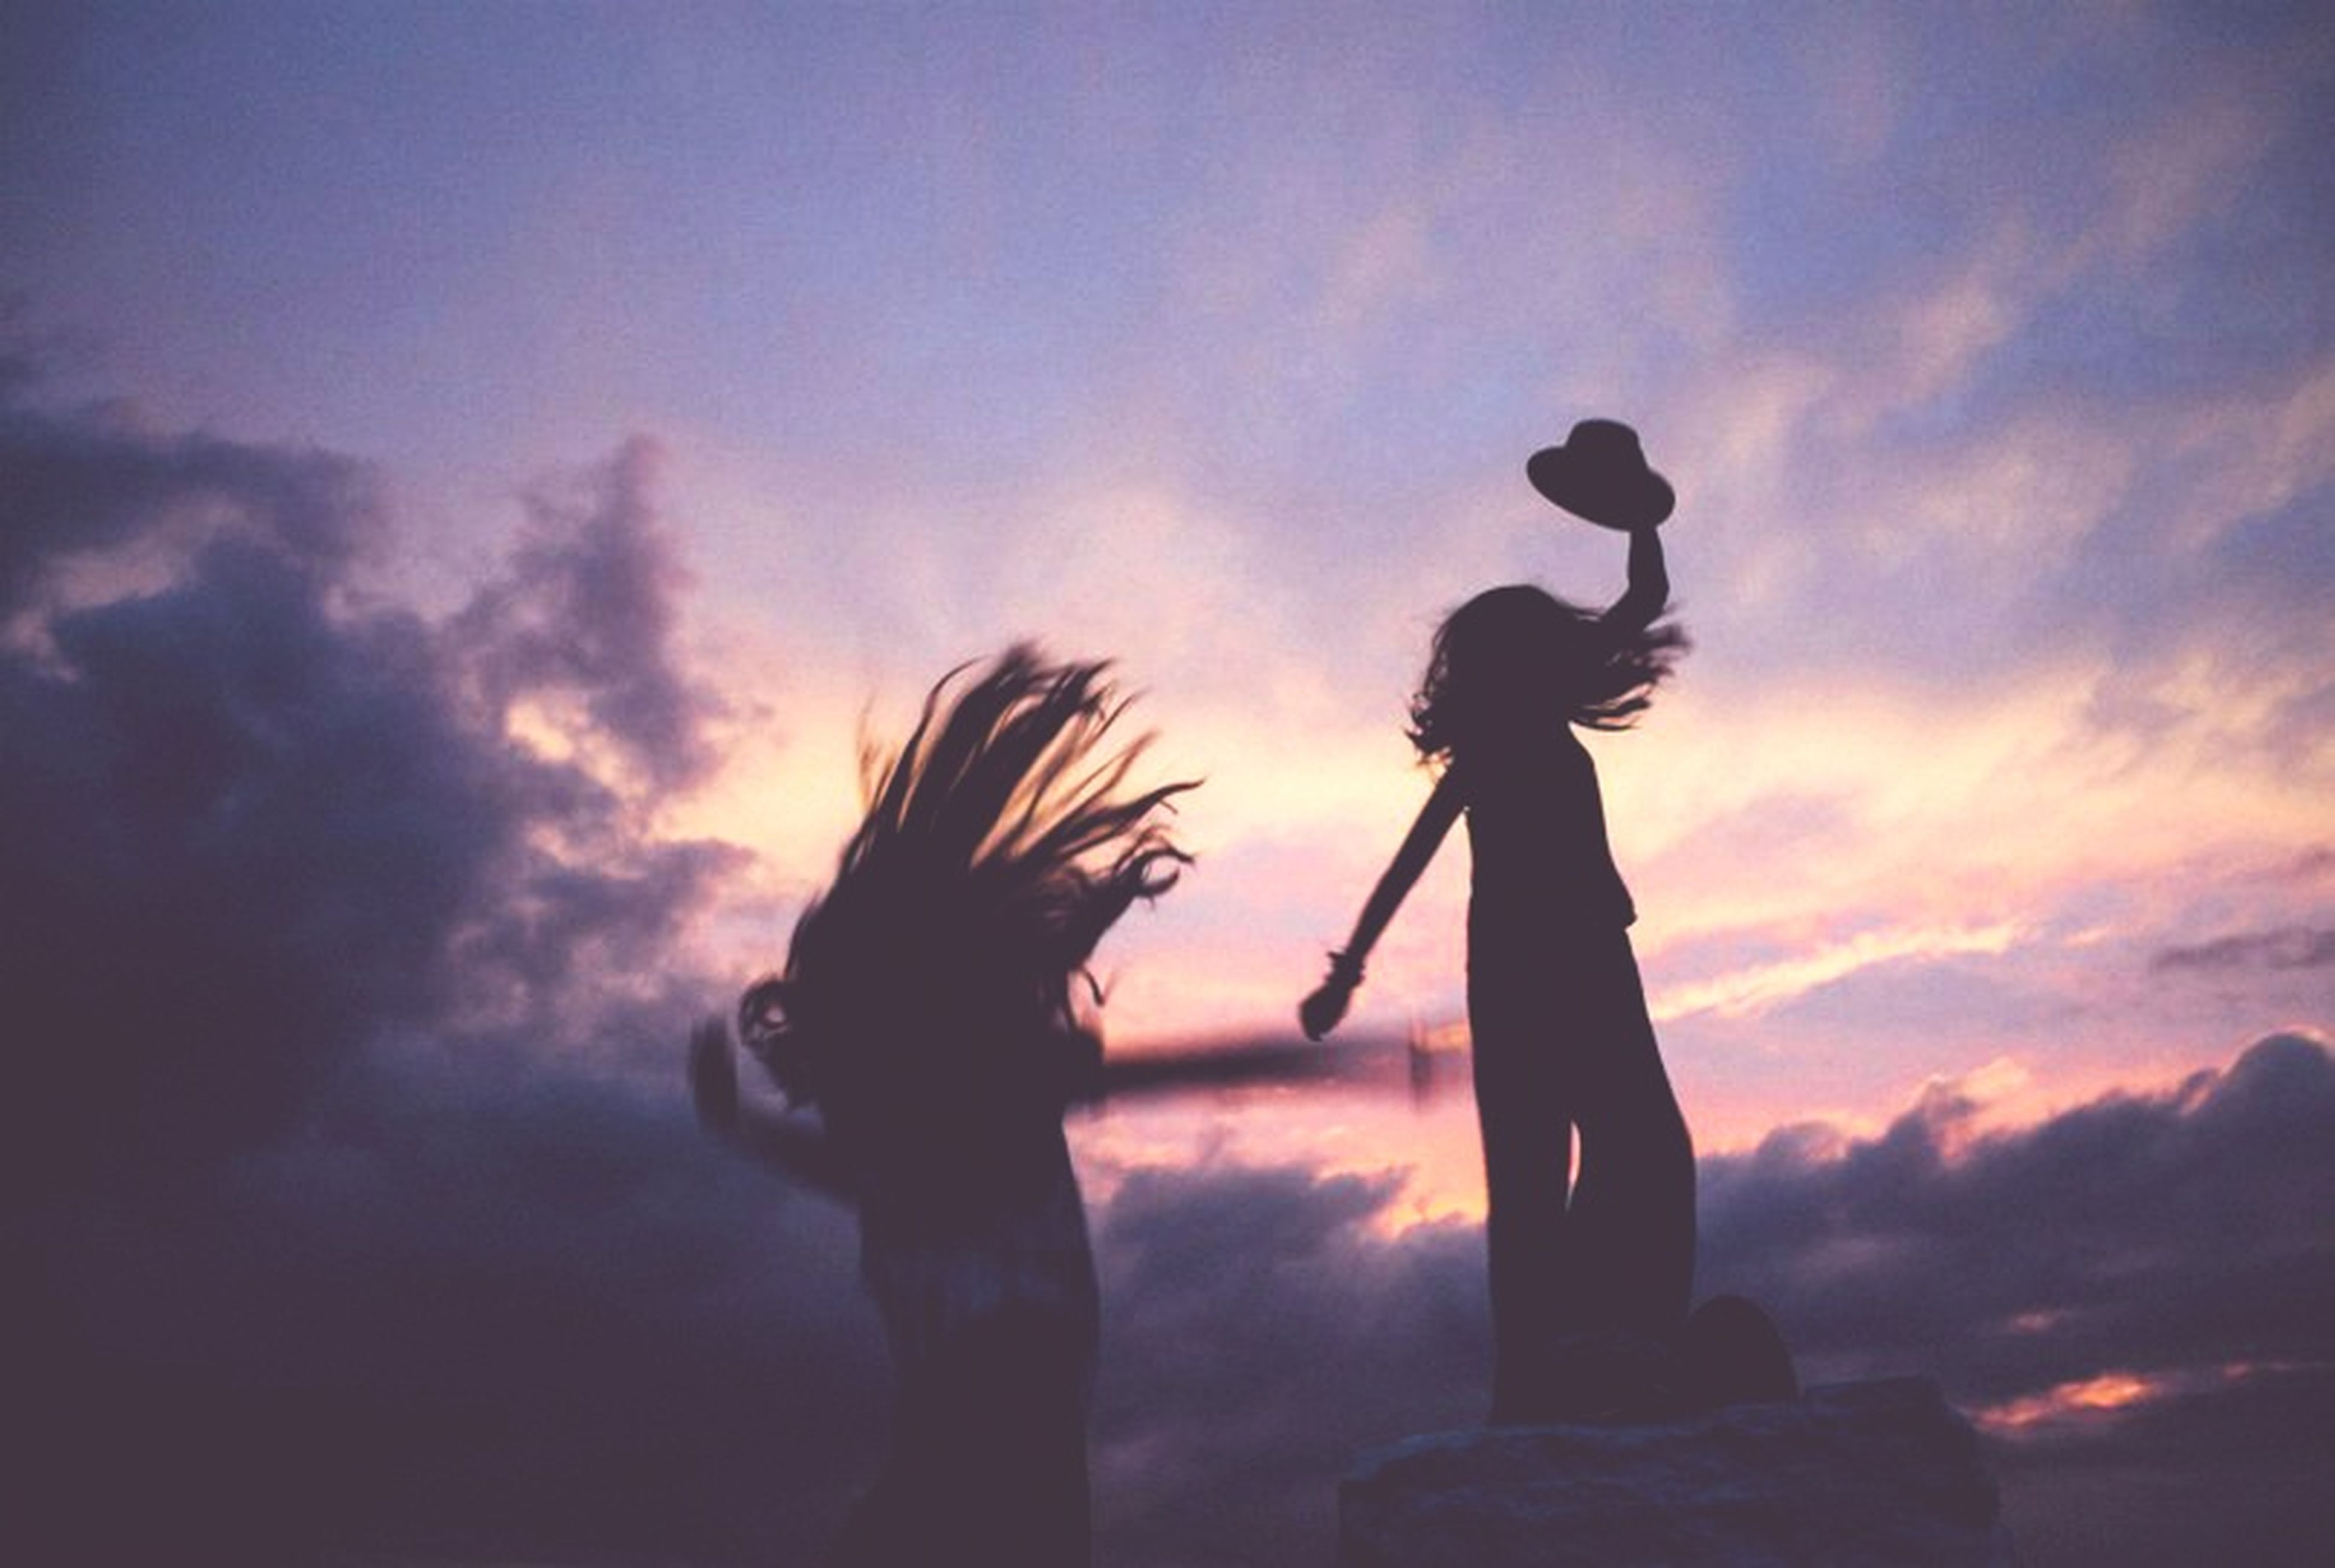 silhouette, sunset, sky, cloud - sky, real people, one person, nature, full length, outdoors, low angle view, standing, beauty in nature, men, leisure activity, lifestyles, day, people